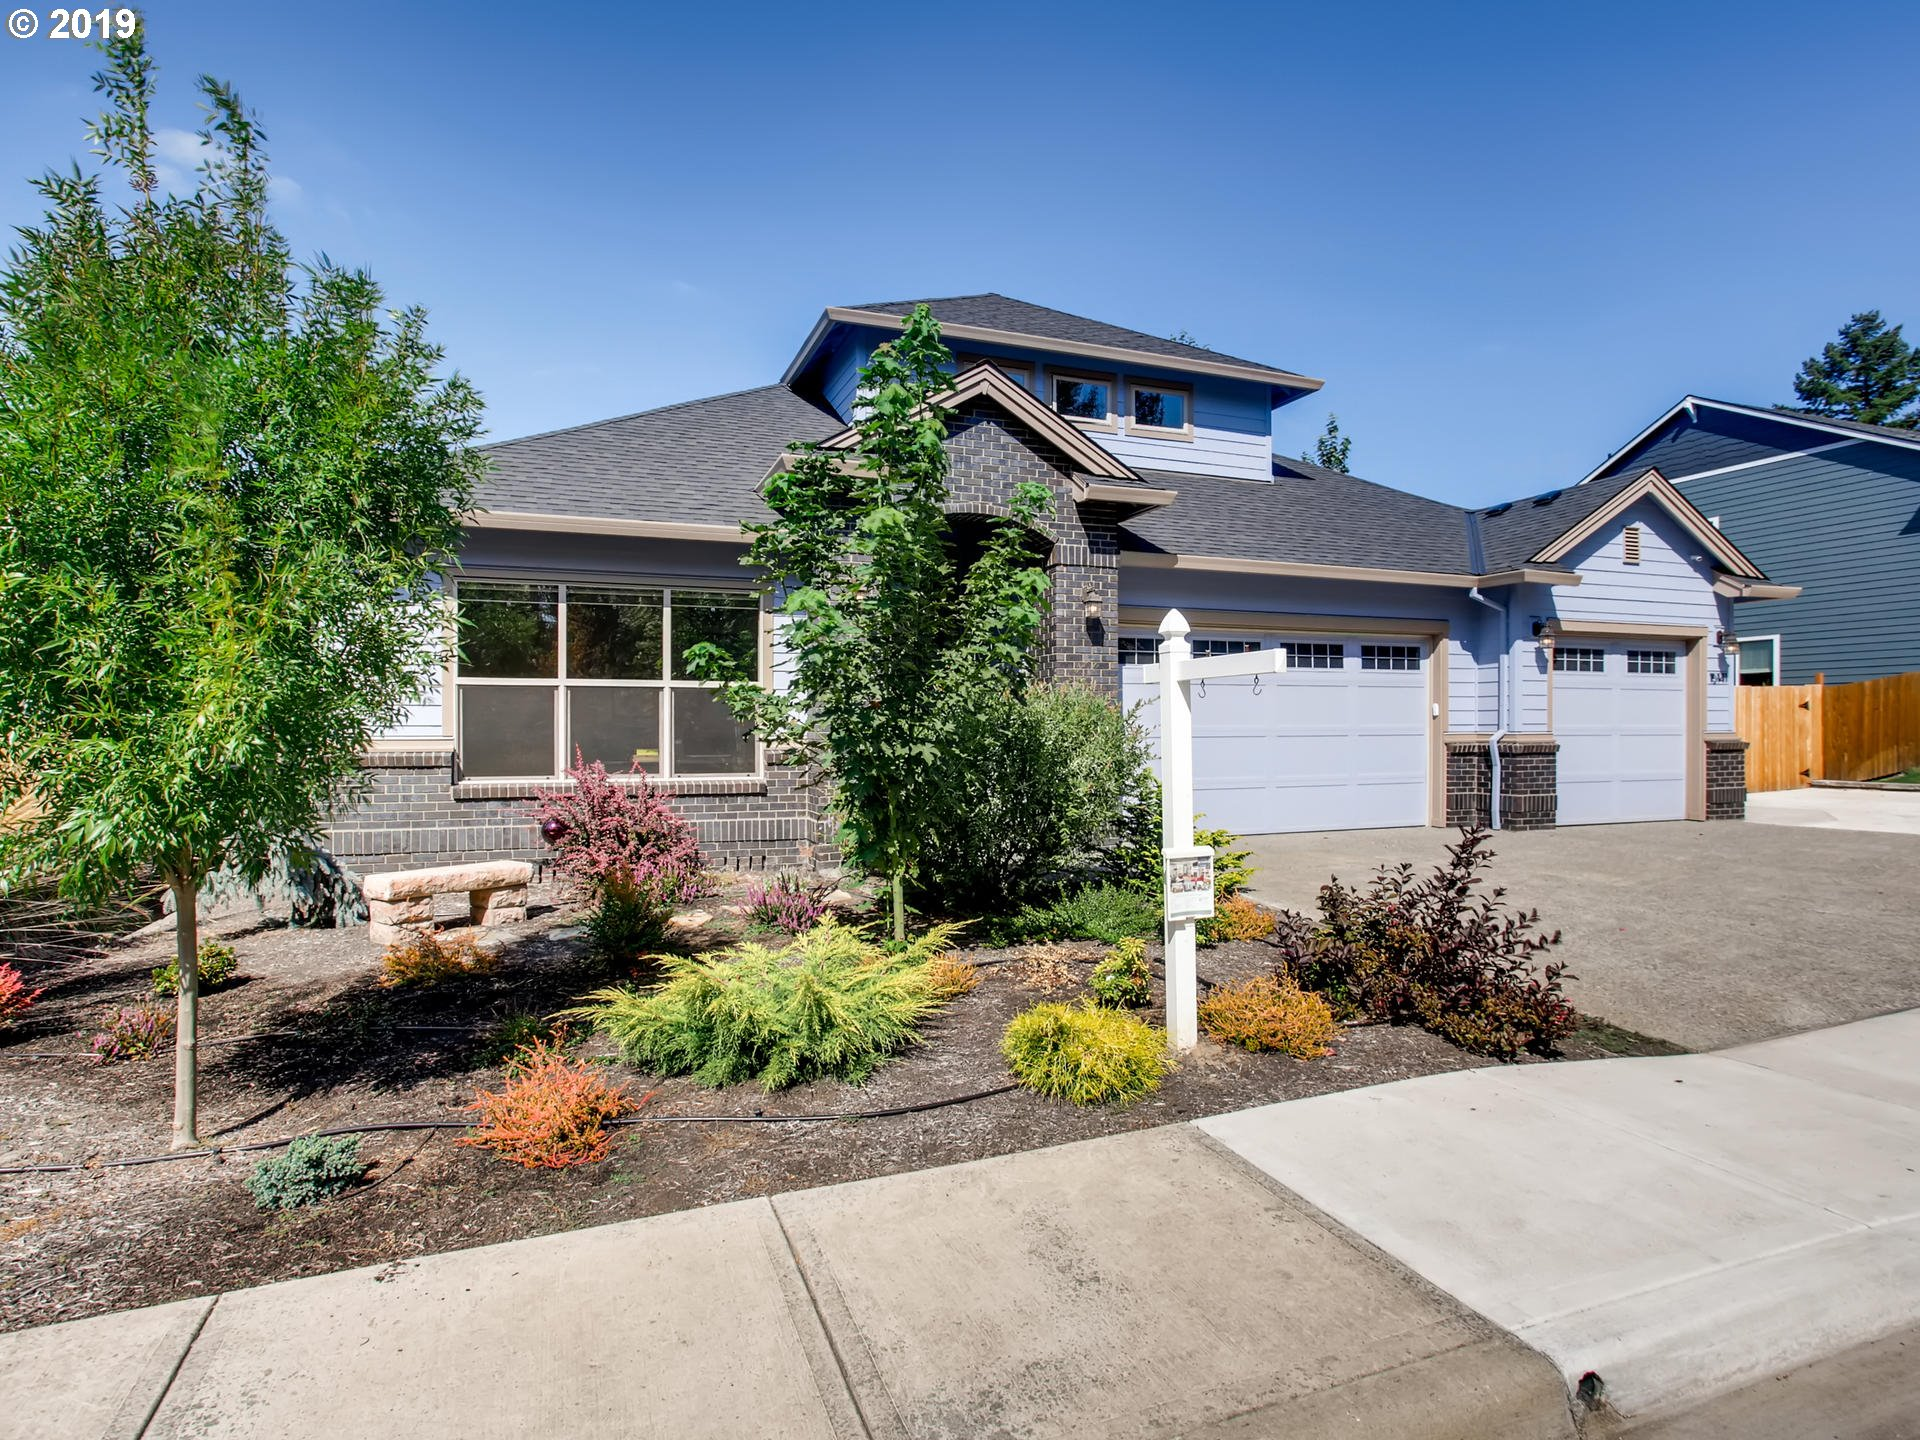 Photo of 15141 NW TODD ST, Beaverton, OR 97006